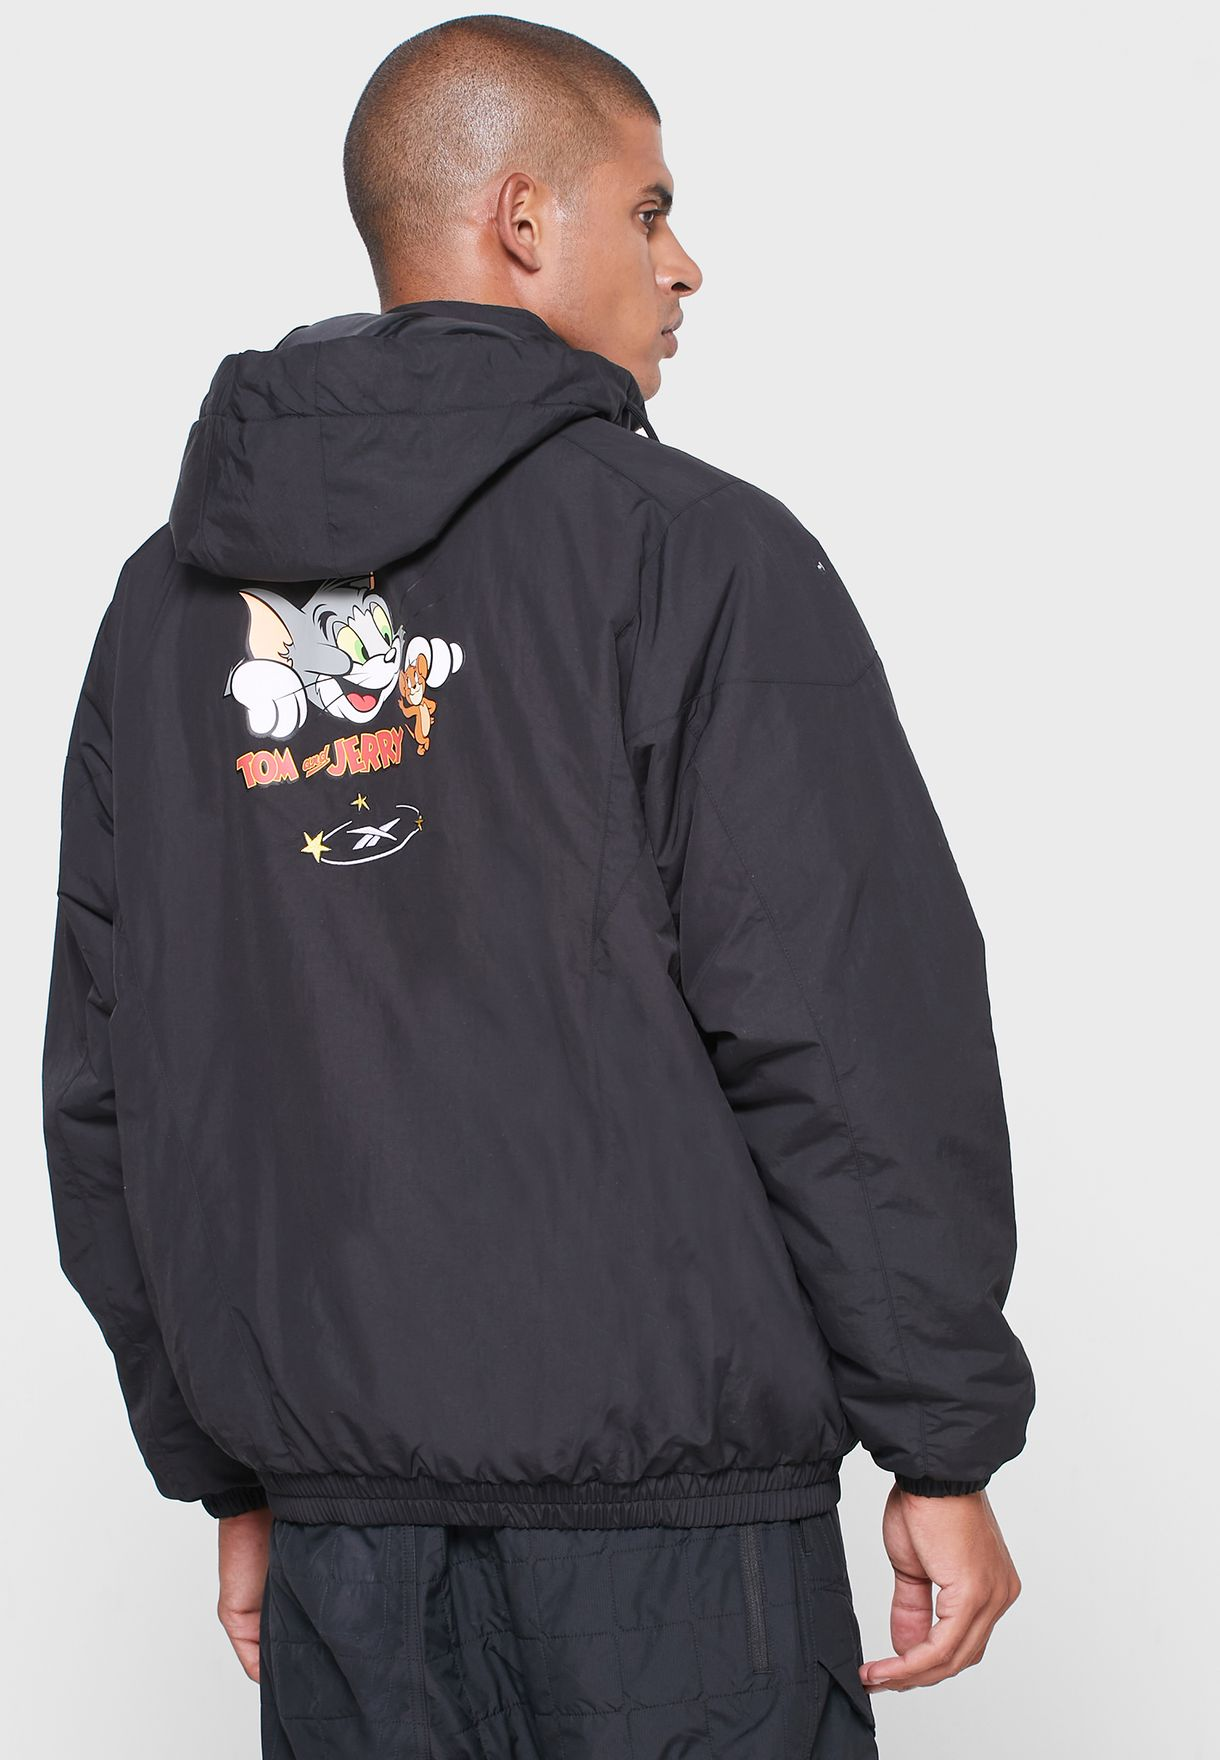 Tom & Jerry Woven Jacket